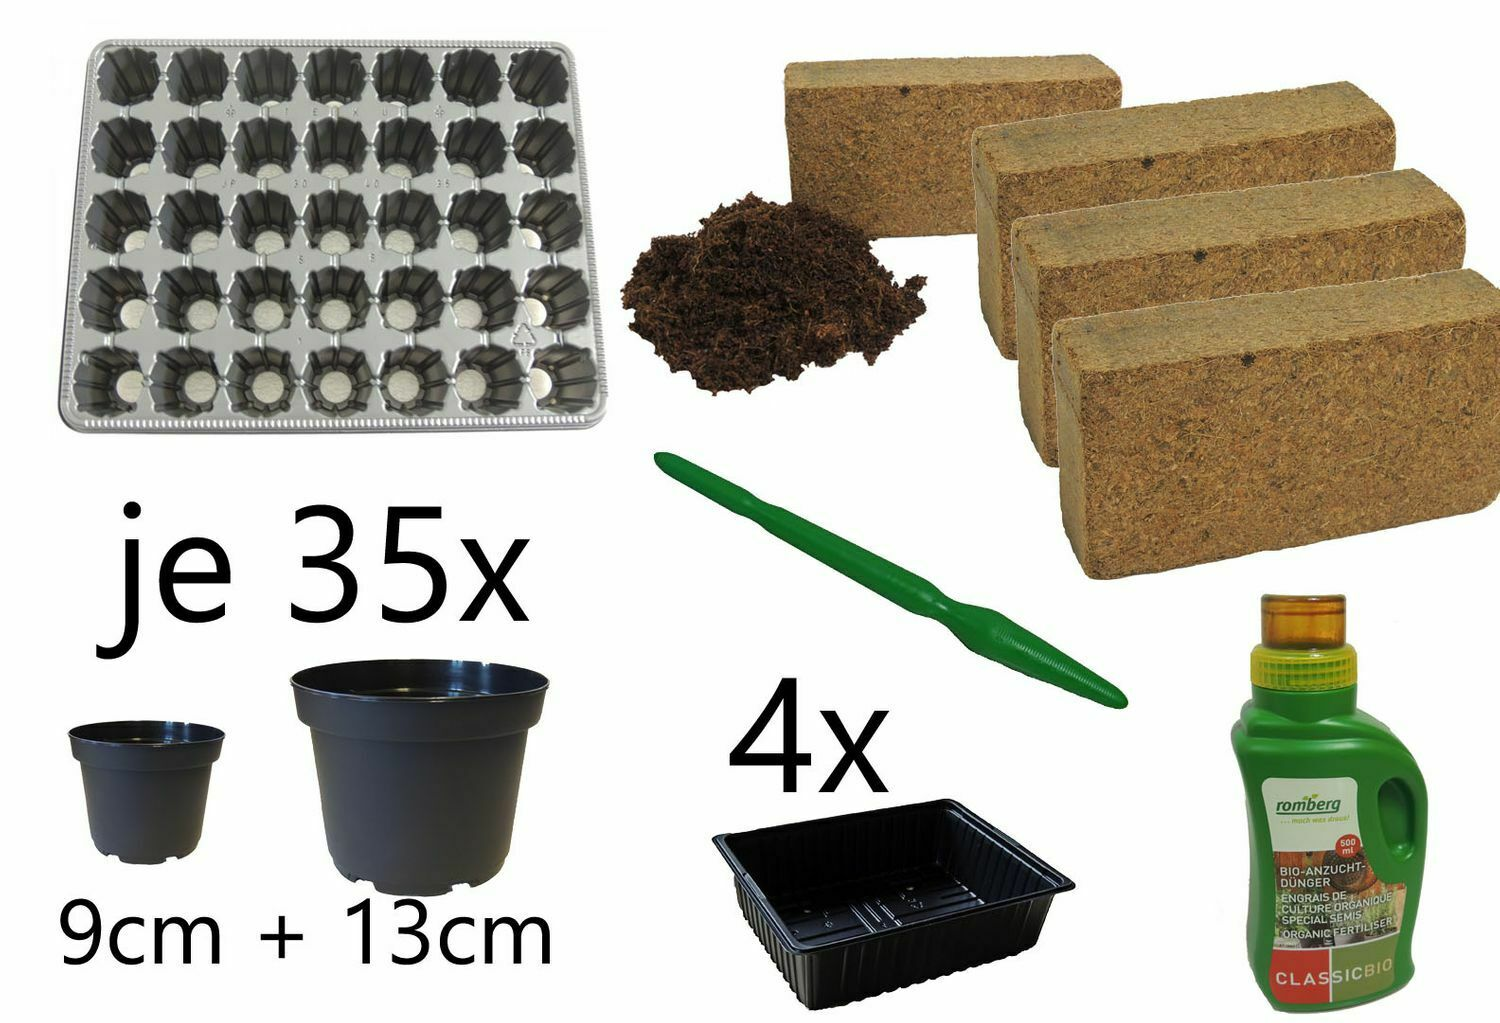 Breeding Sowing And Pikierset 81-Teilig For 35 Plants Tomatoes Chili Paprika